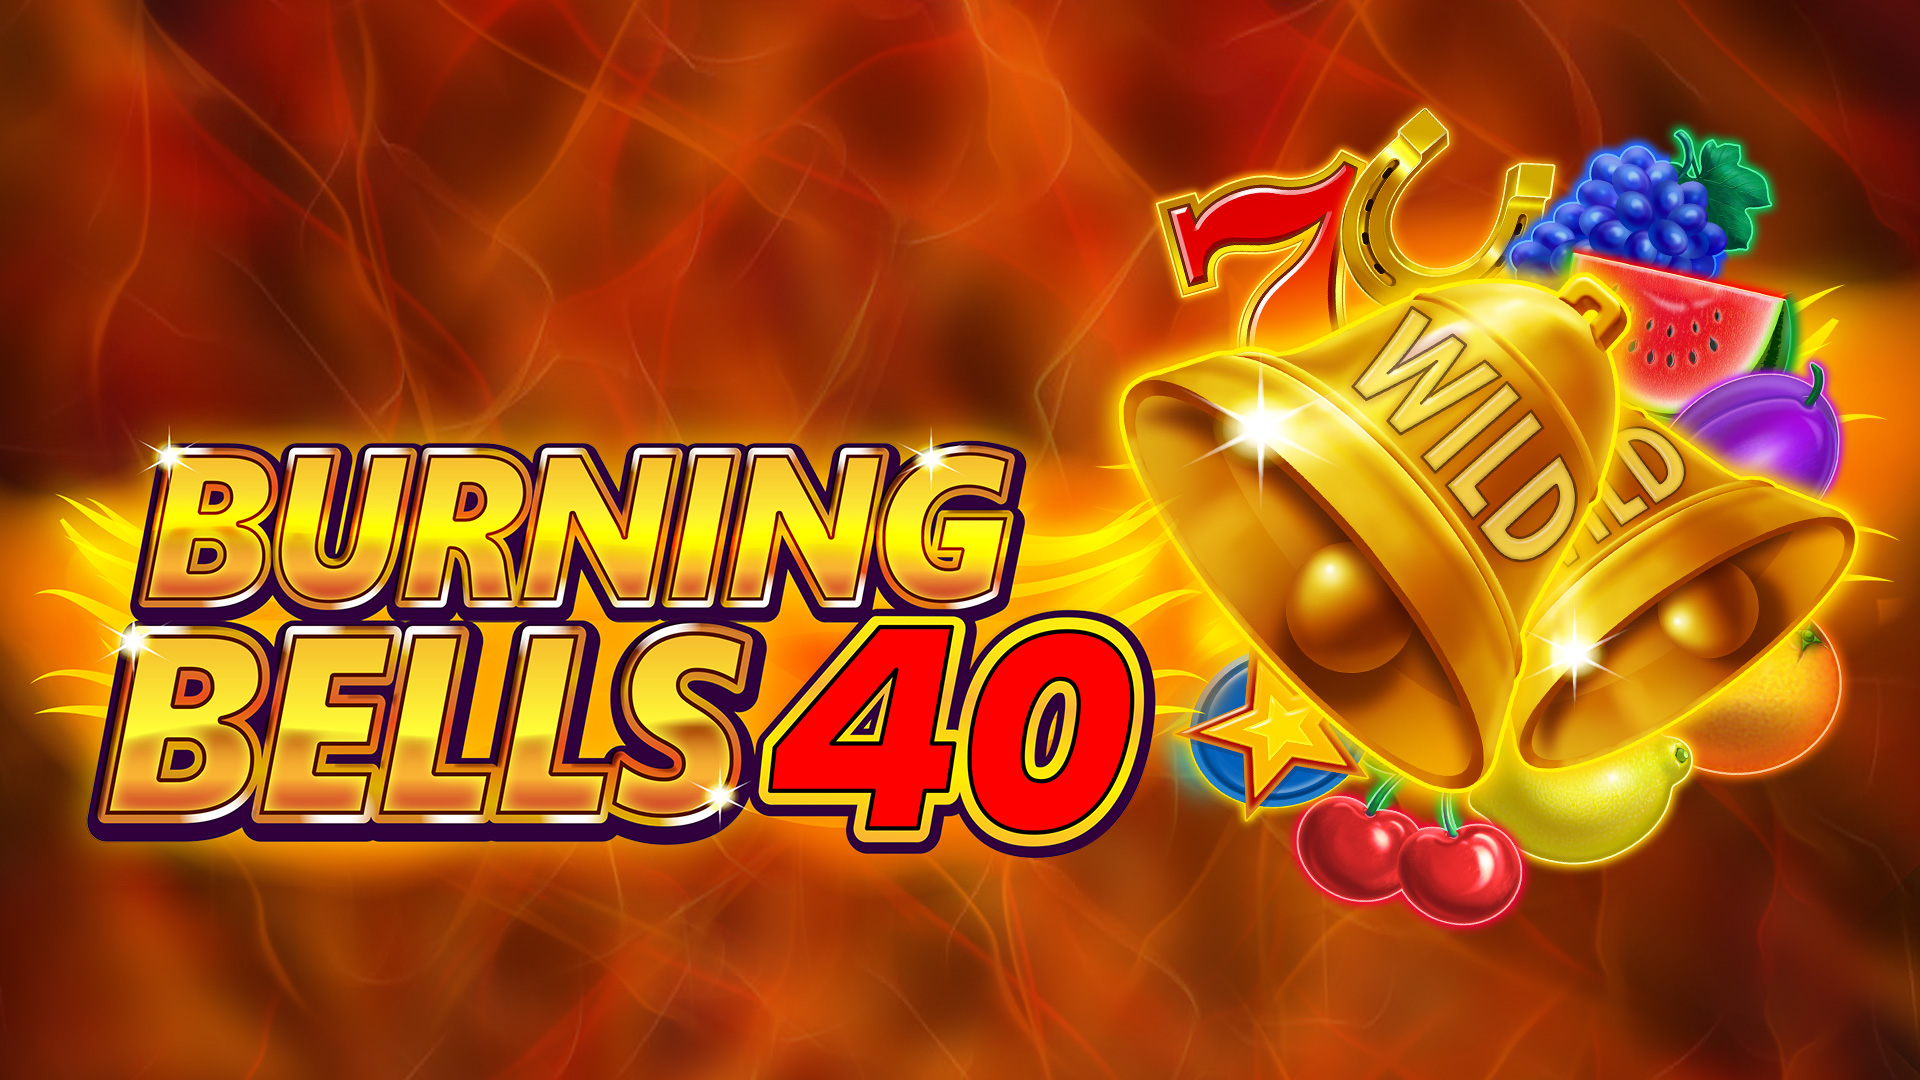 Burning-Bells-40-Feature-Image